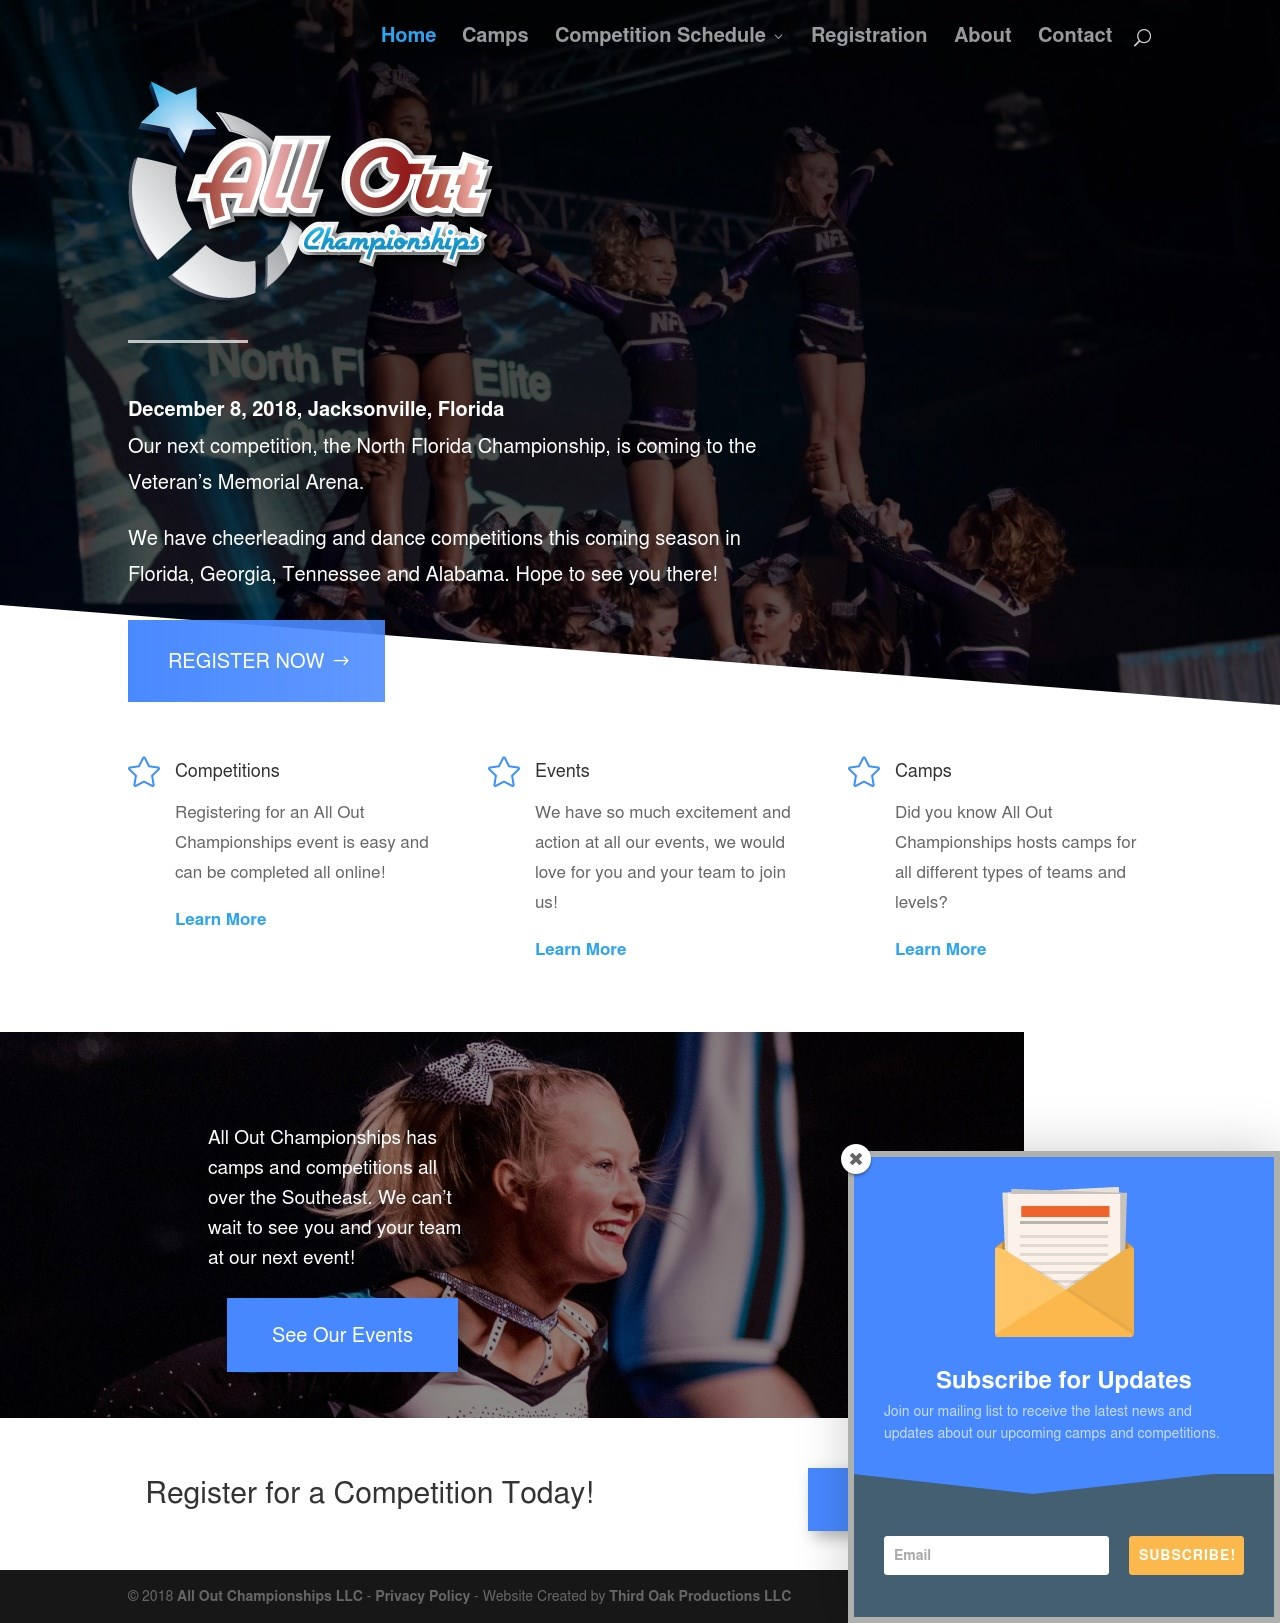 All Out Championships Homepage by Third Oak Productions LLC